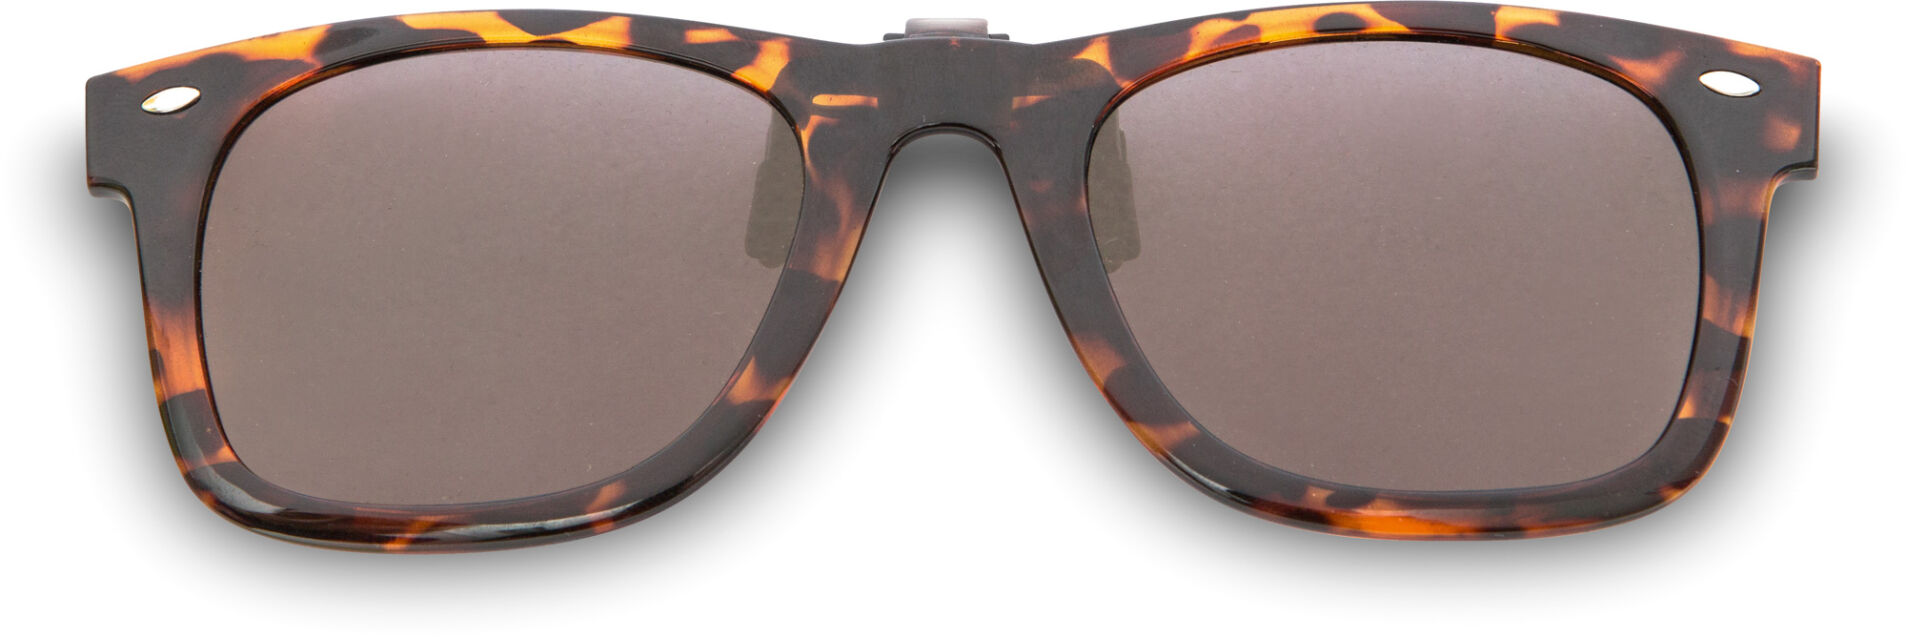 WayCool Sr. Flip-Ups Havana/Brown, Polarized